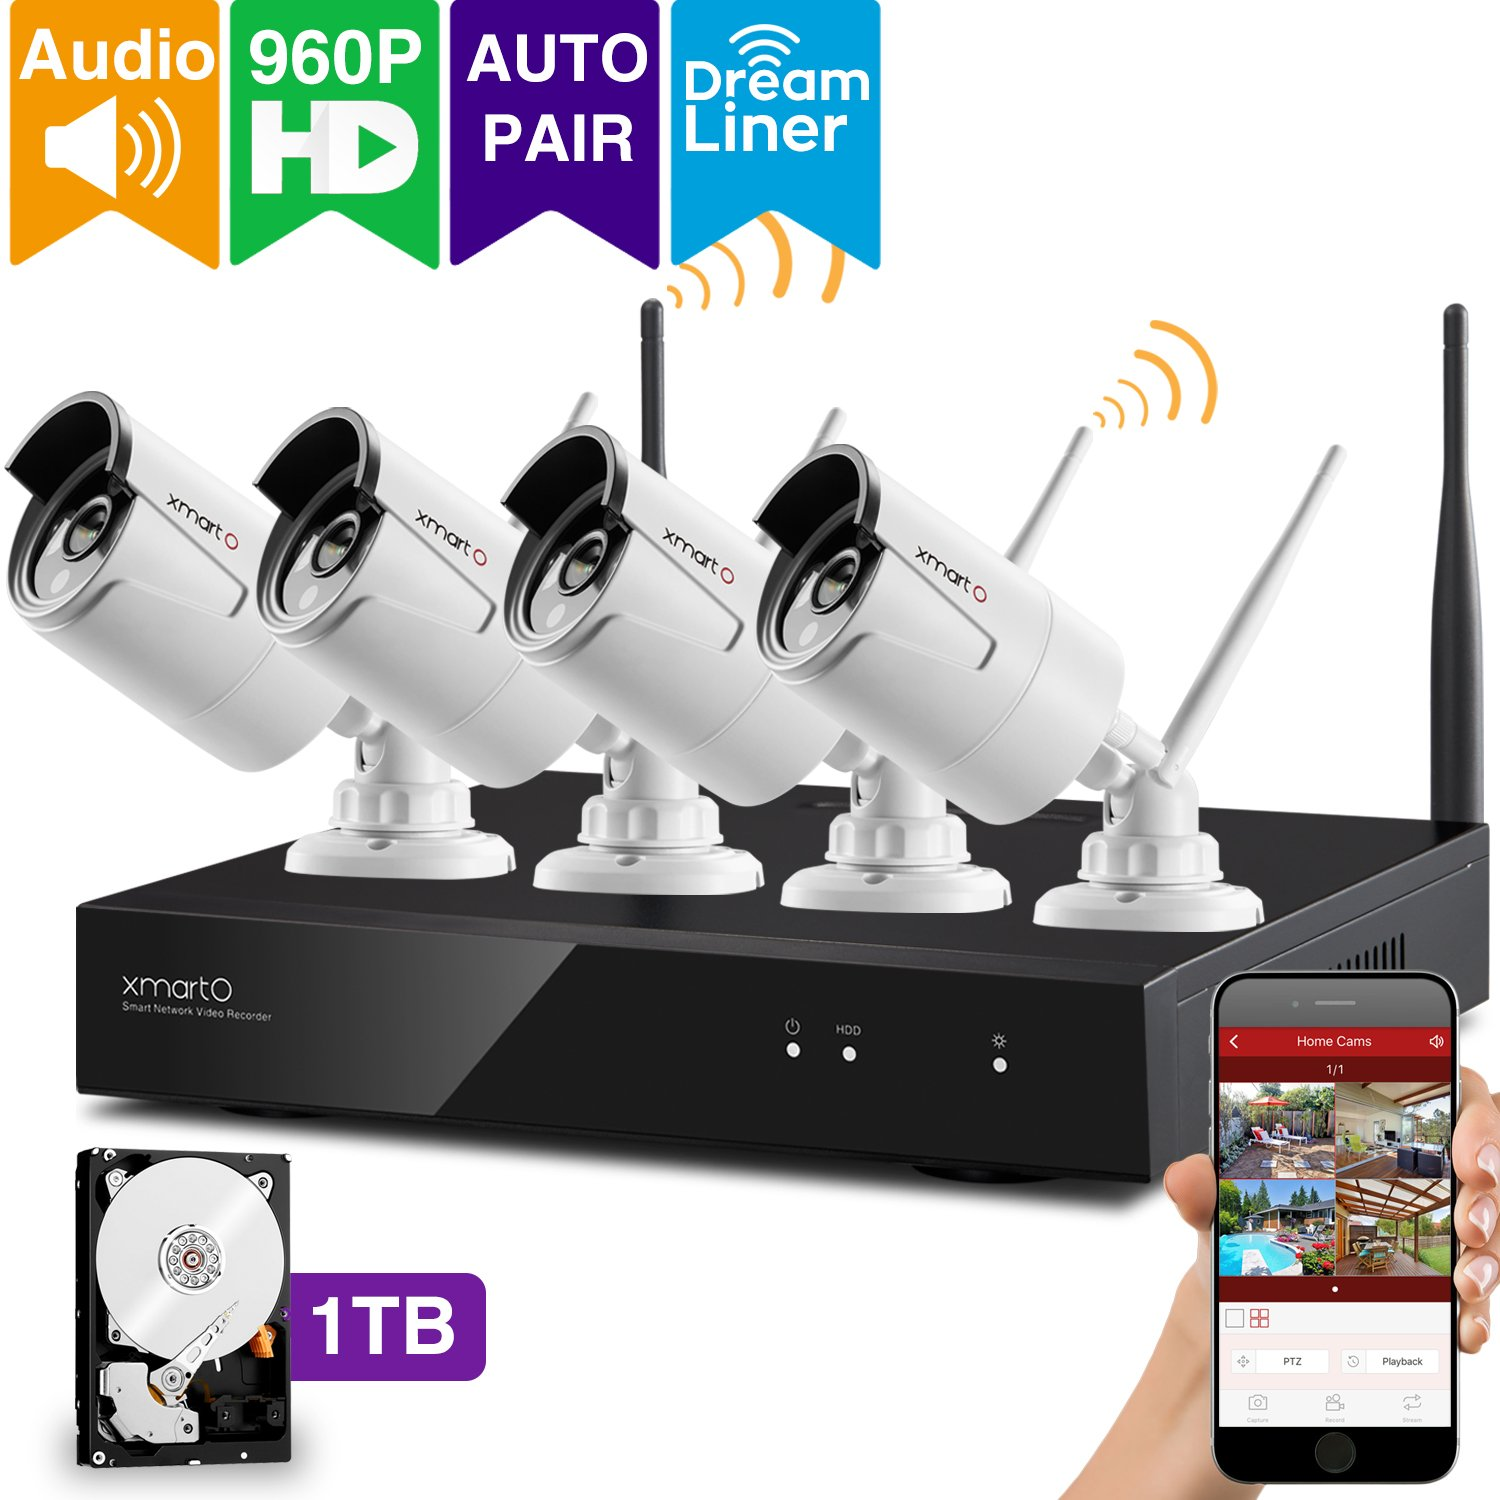 [Audio Compatible] xmartO Wireless Security Camera System 4CH 1080p HD NVR with 4pcs 960p